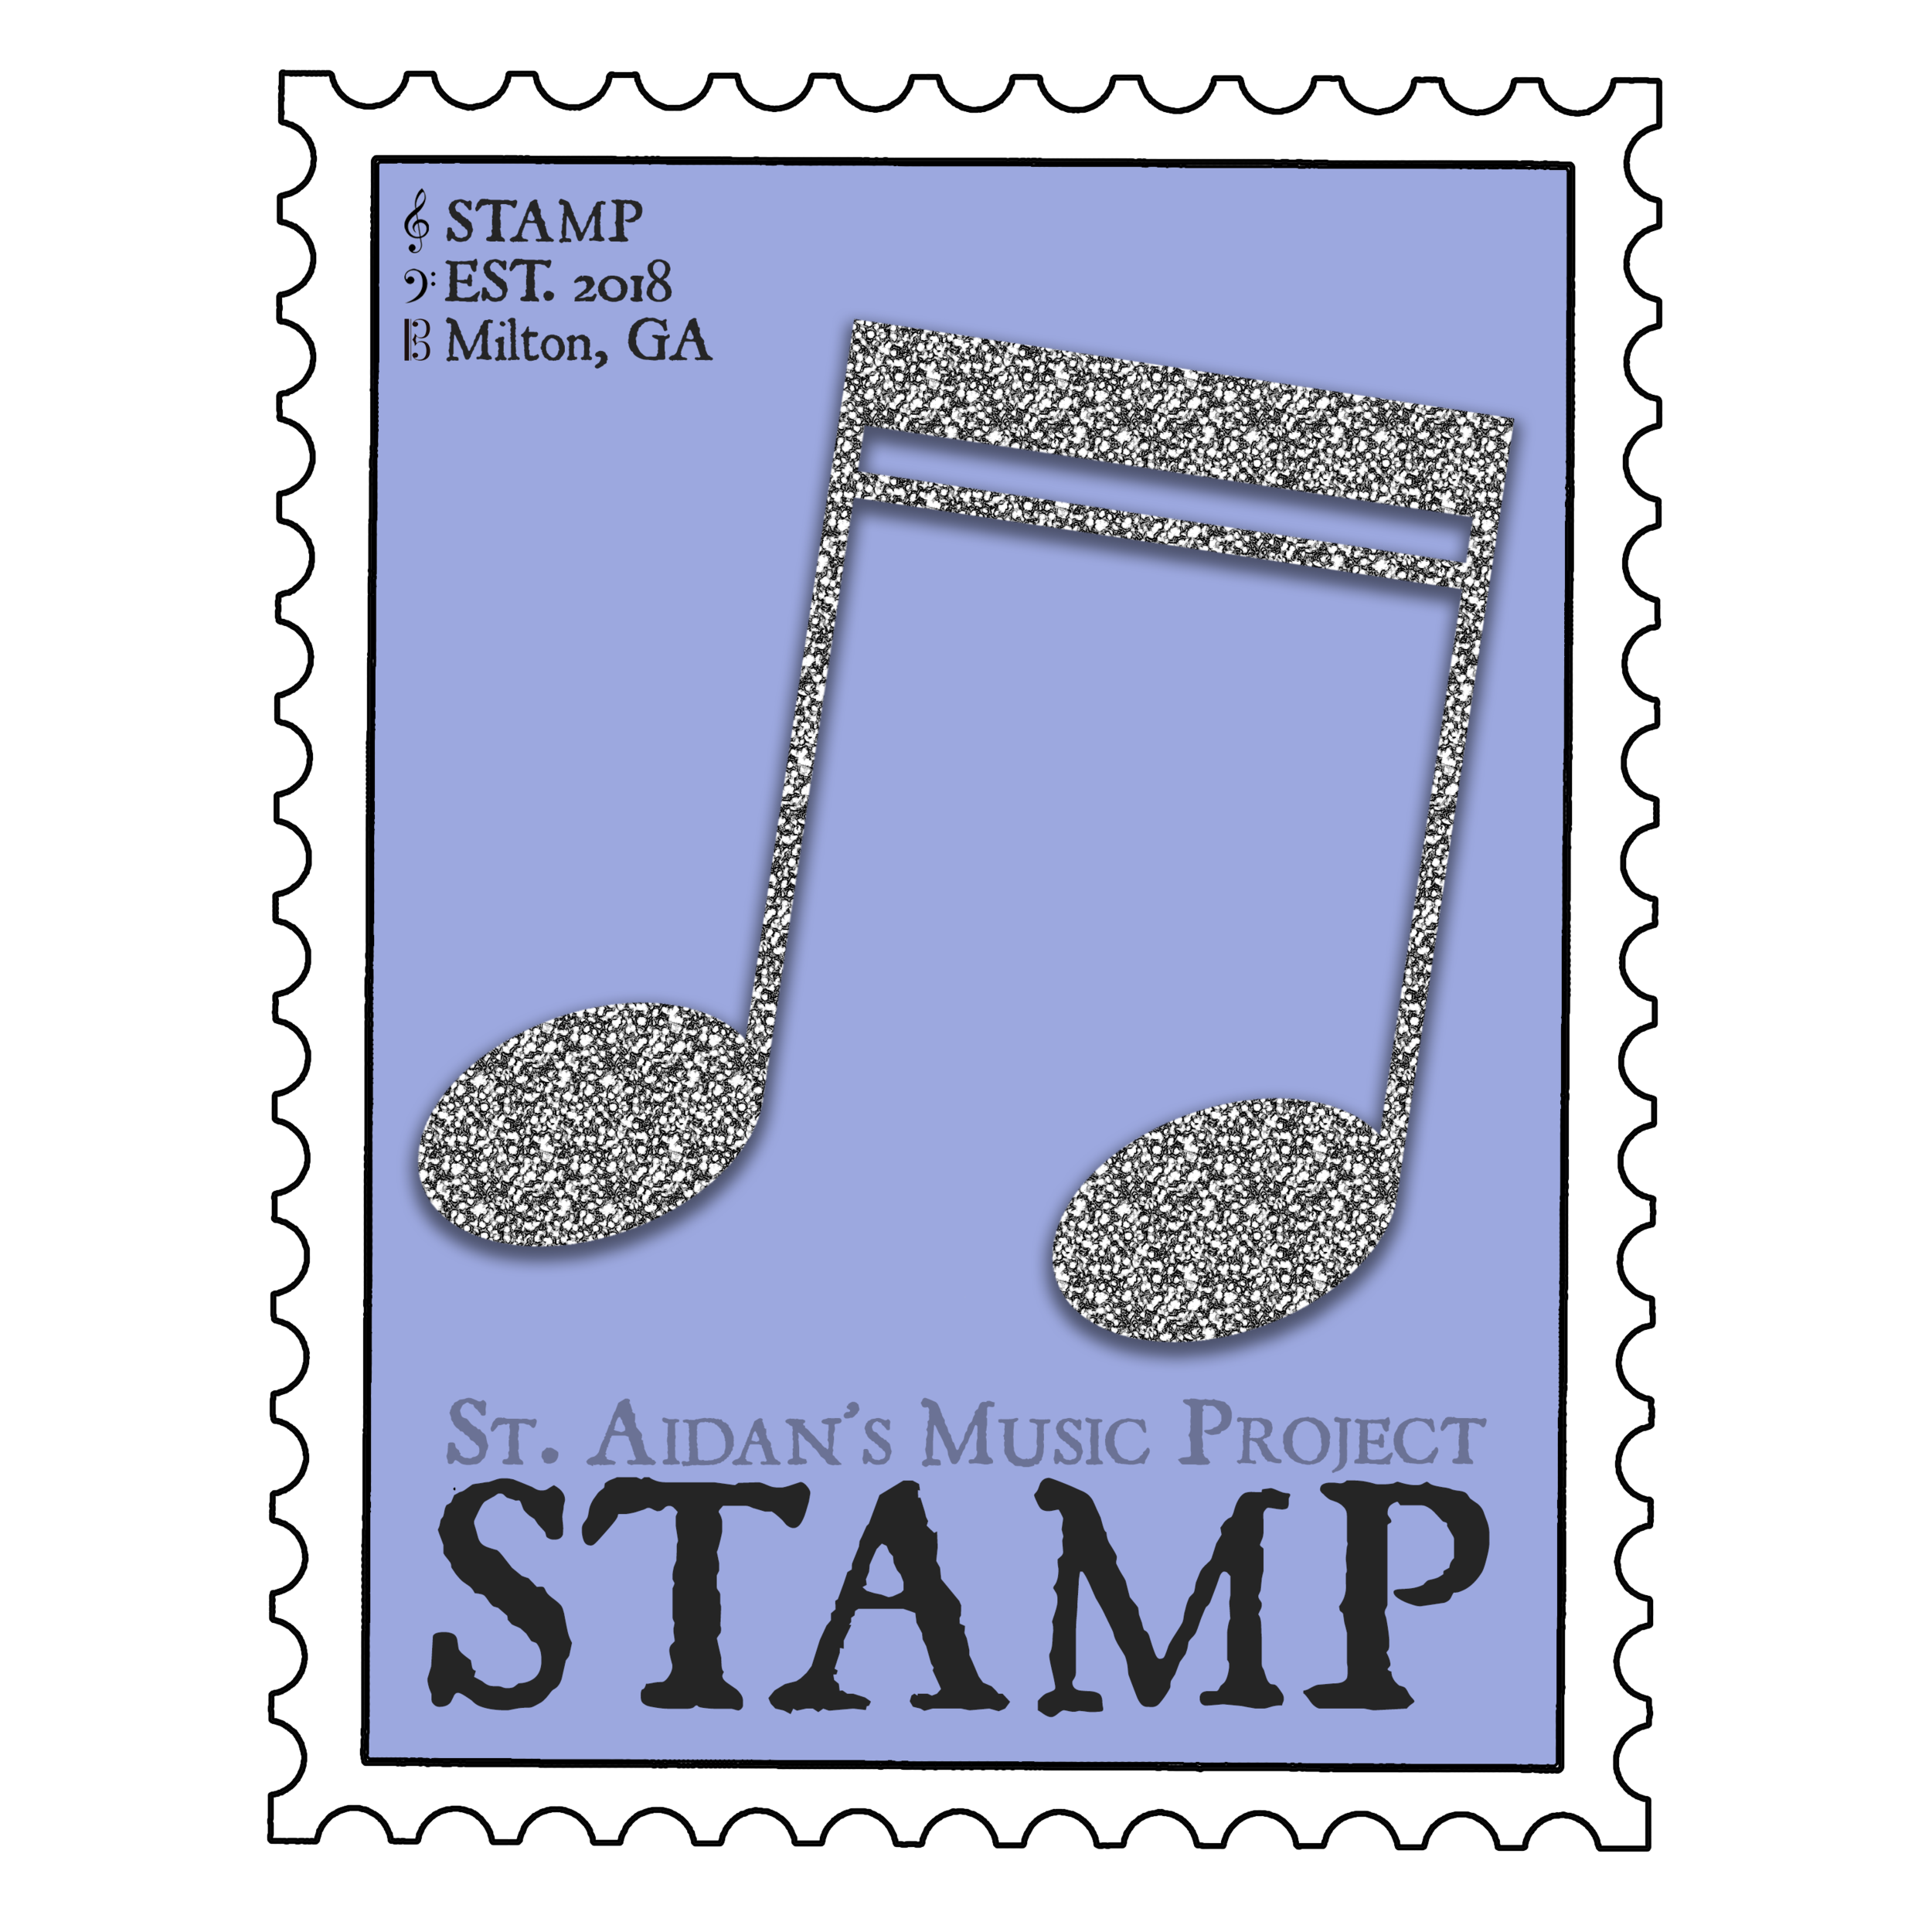 STAMP_Logo_DoubleNote_Purple2.png